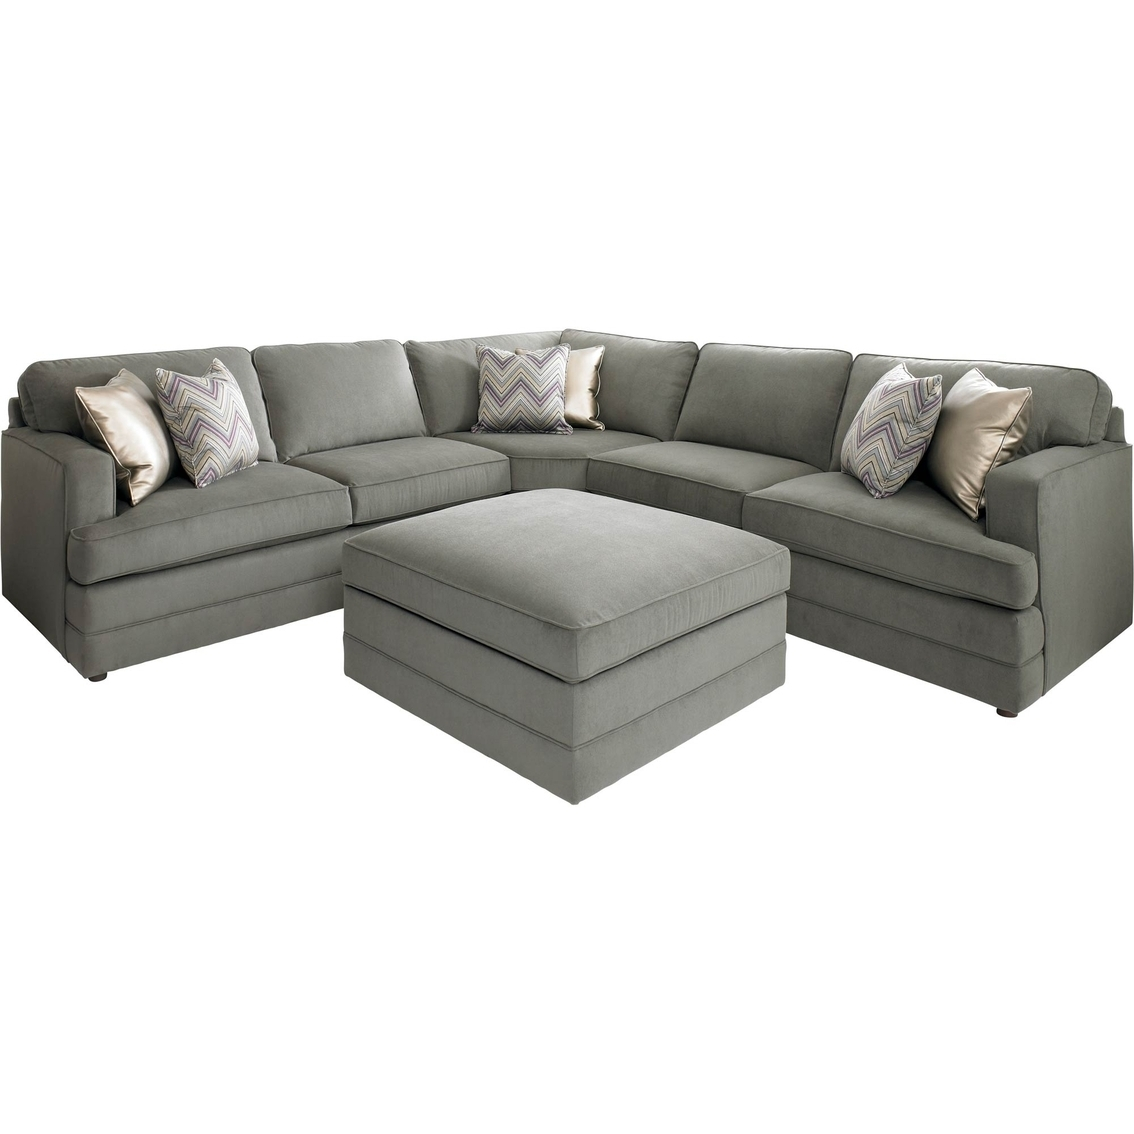 Bassett Dalton L Shaped Sectional Sofa With Ottoman | Making Our Regarding Sectional Sofas At Bassett (View 7 of 10)